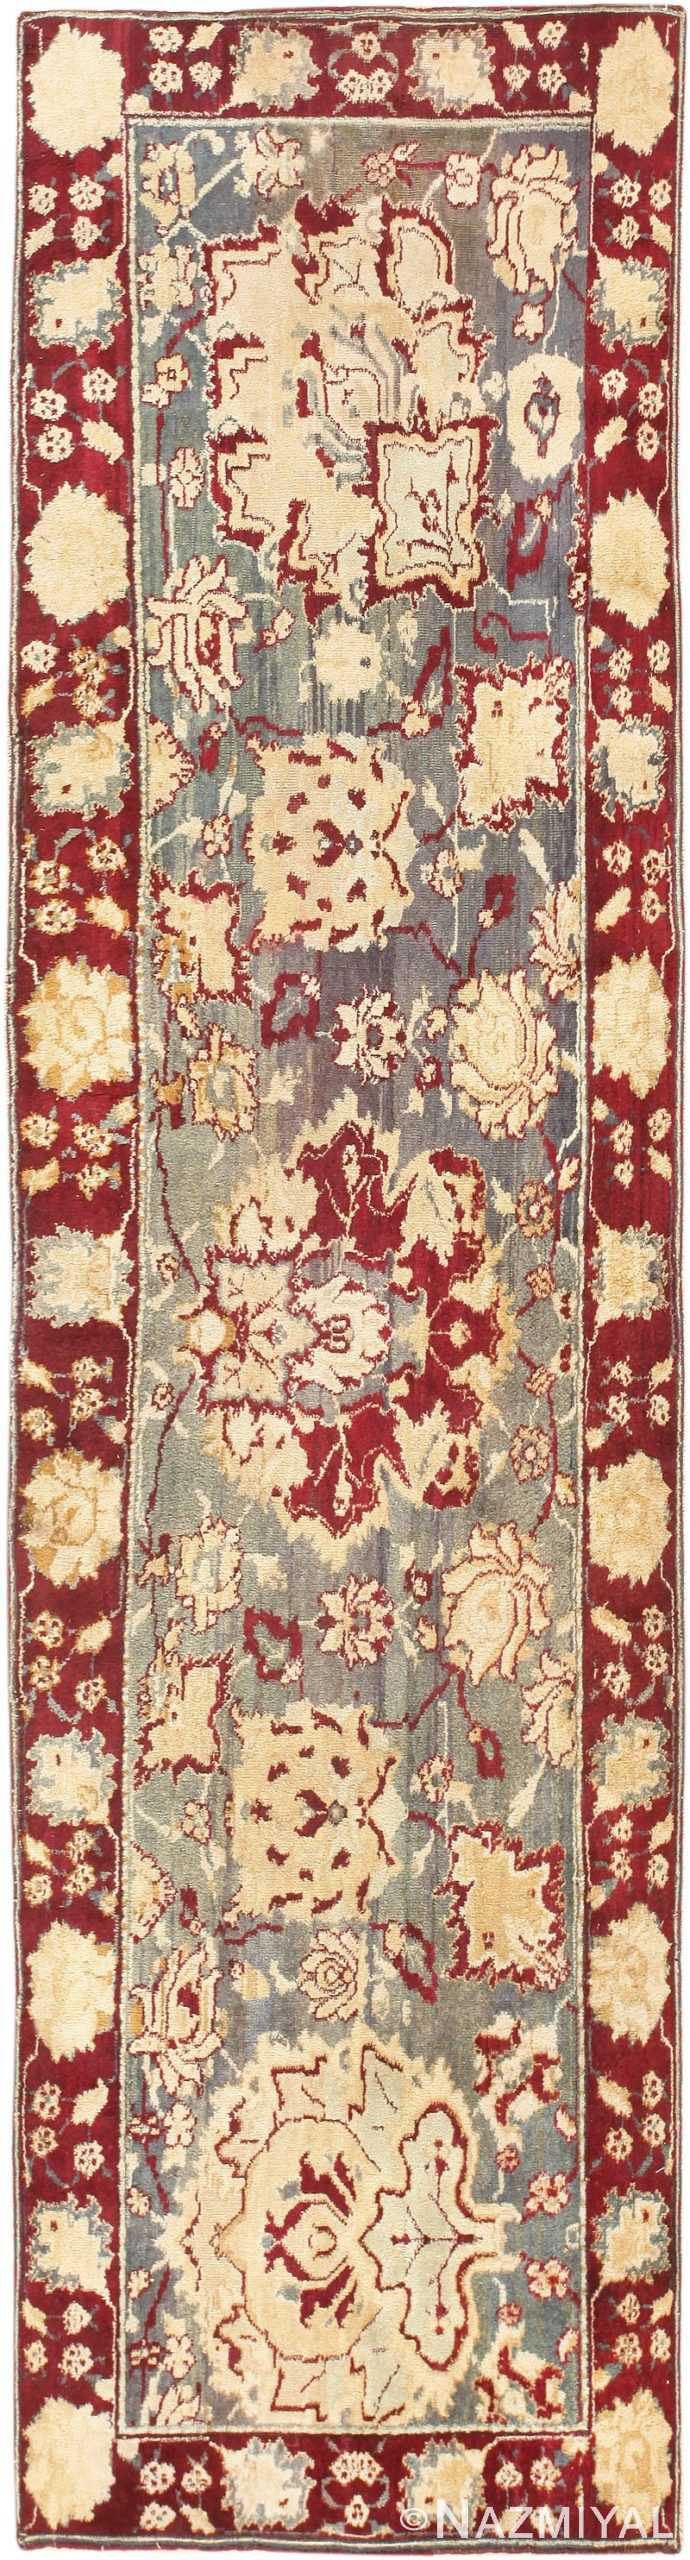 Antique Indian Agra Runner 47265 Detail/Large View